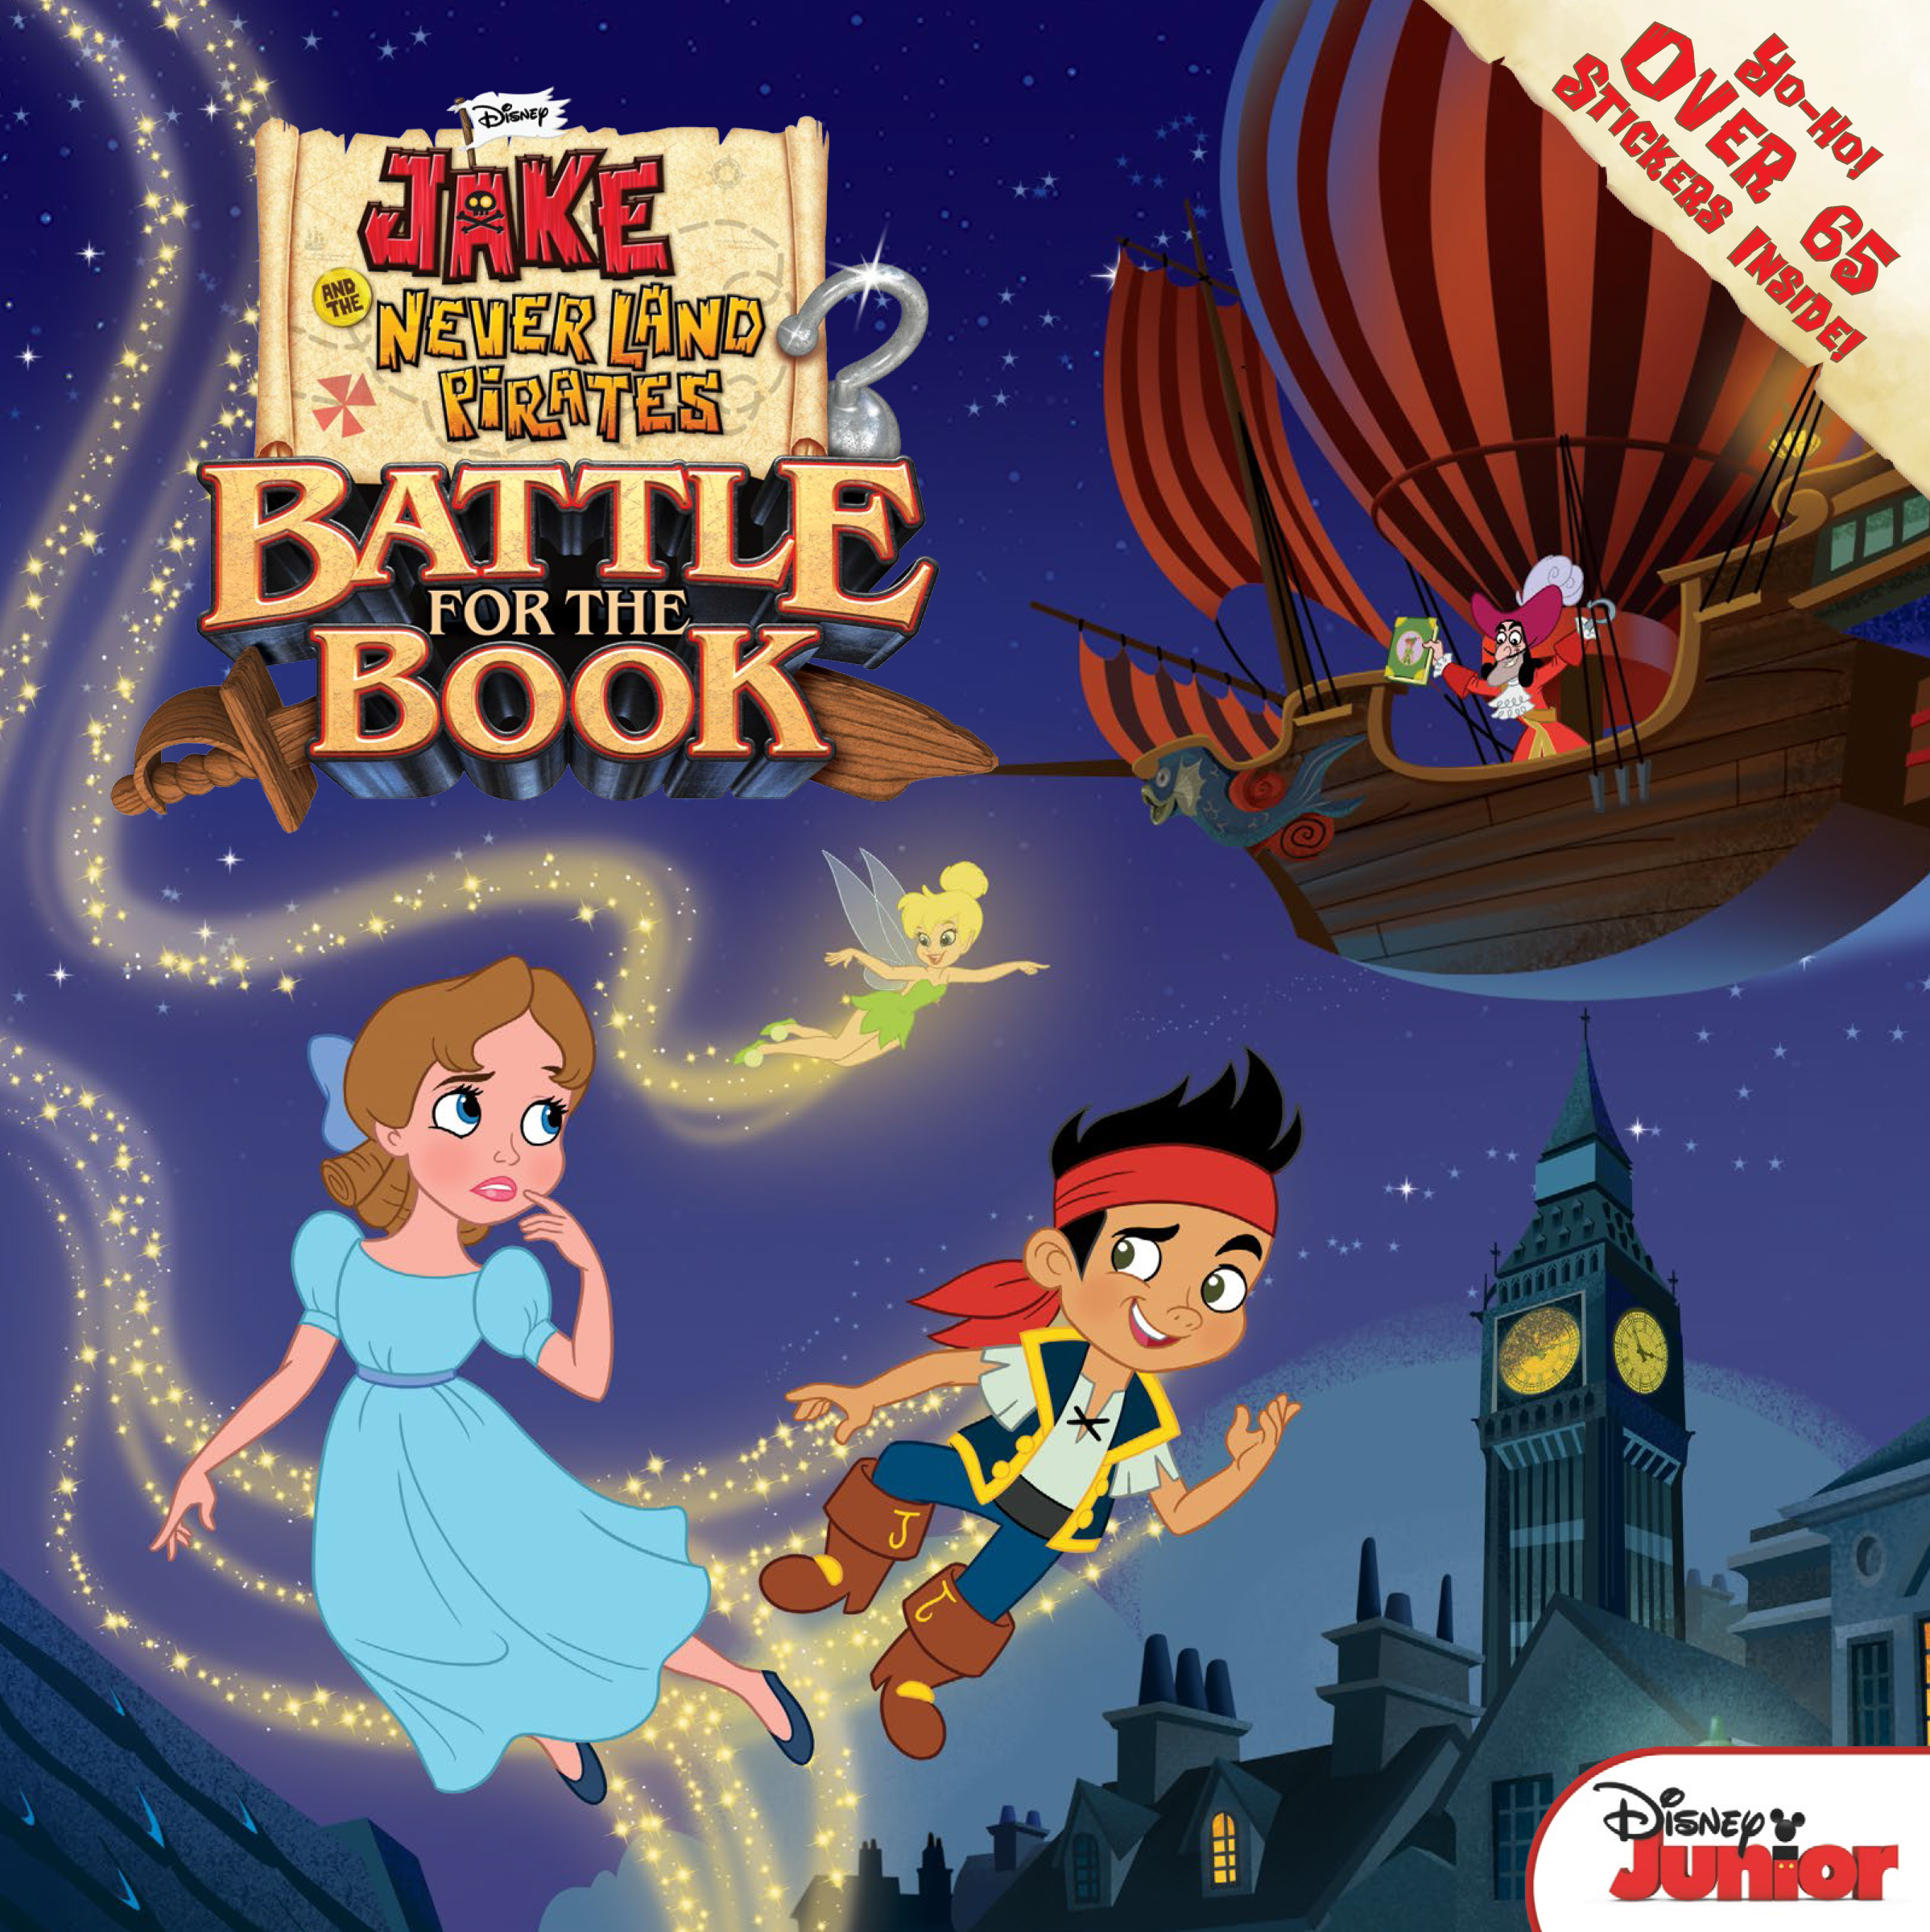 jake and the never land pirates battle for the book disney